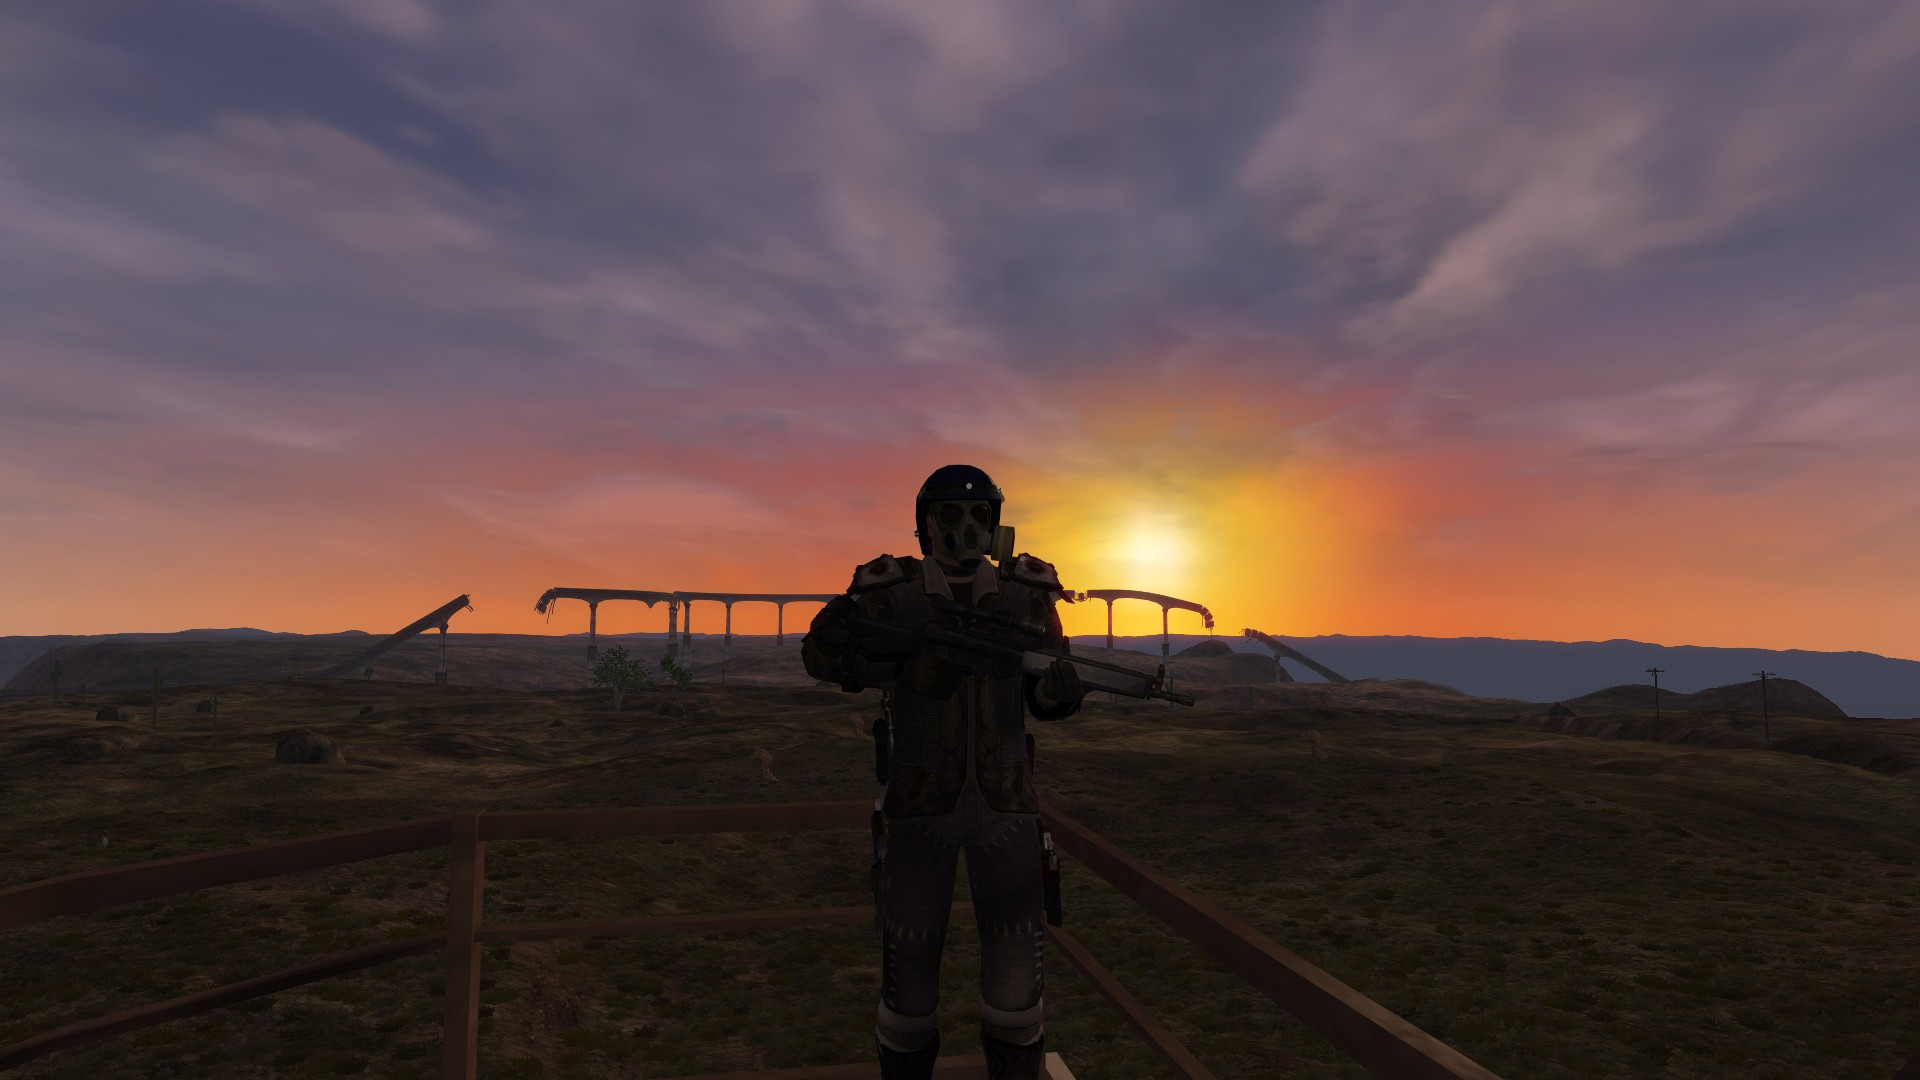 Fallen Earth - Watching the sunset on the watchtower at Watchtower 2